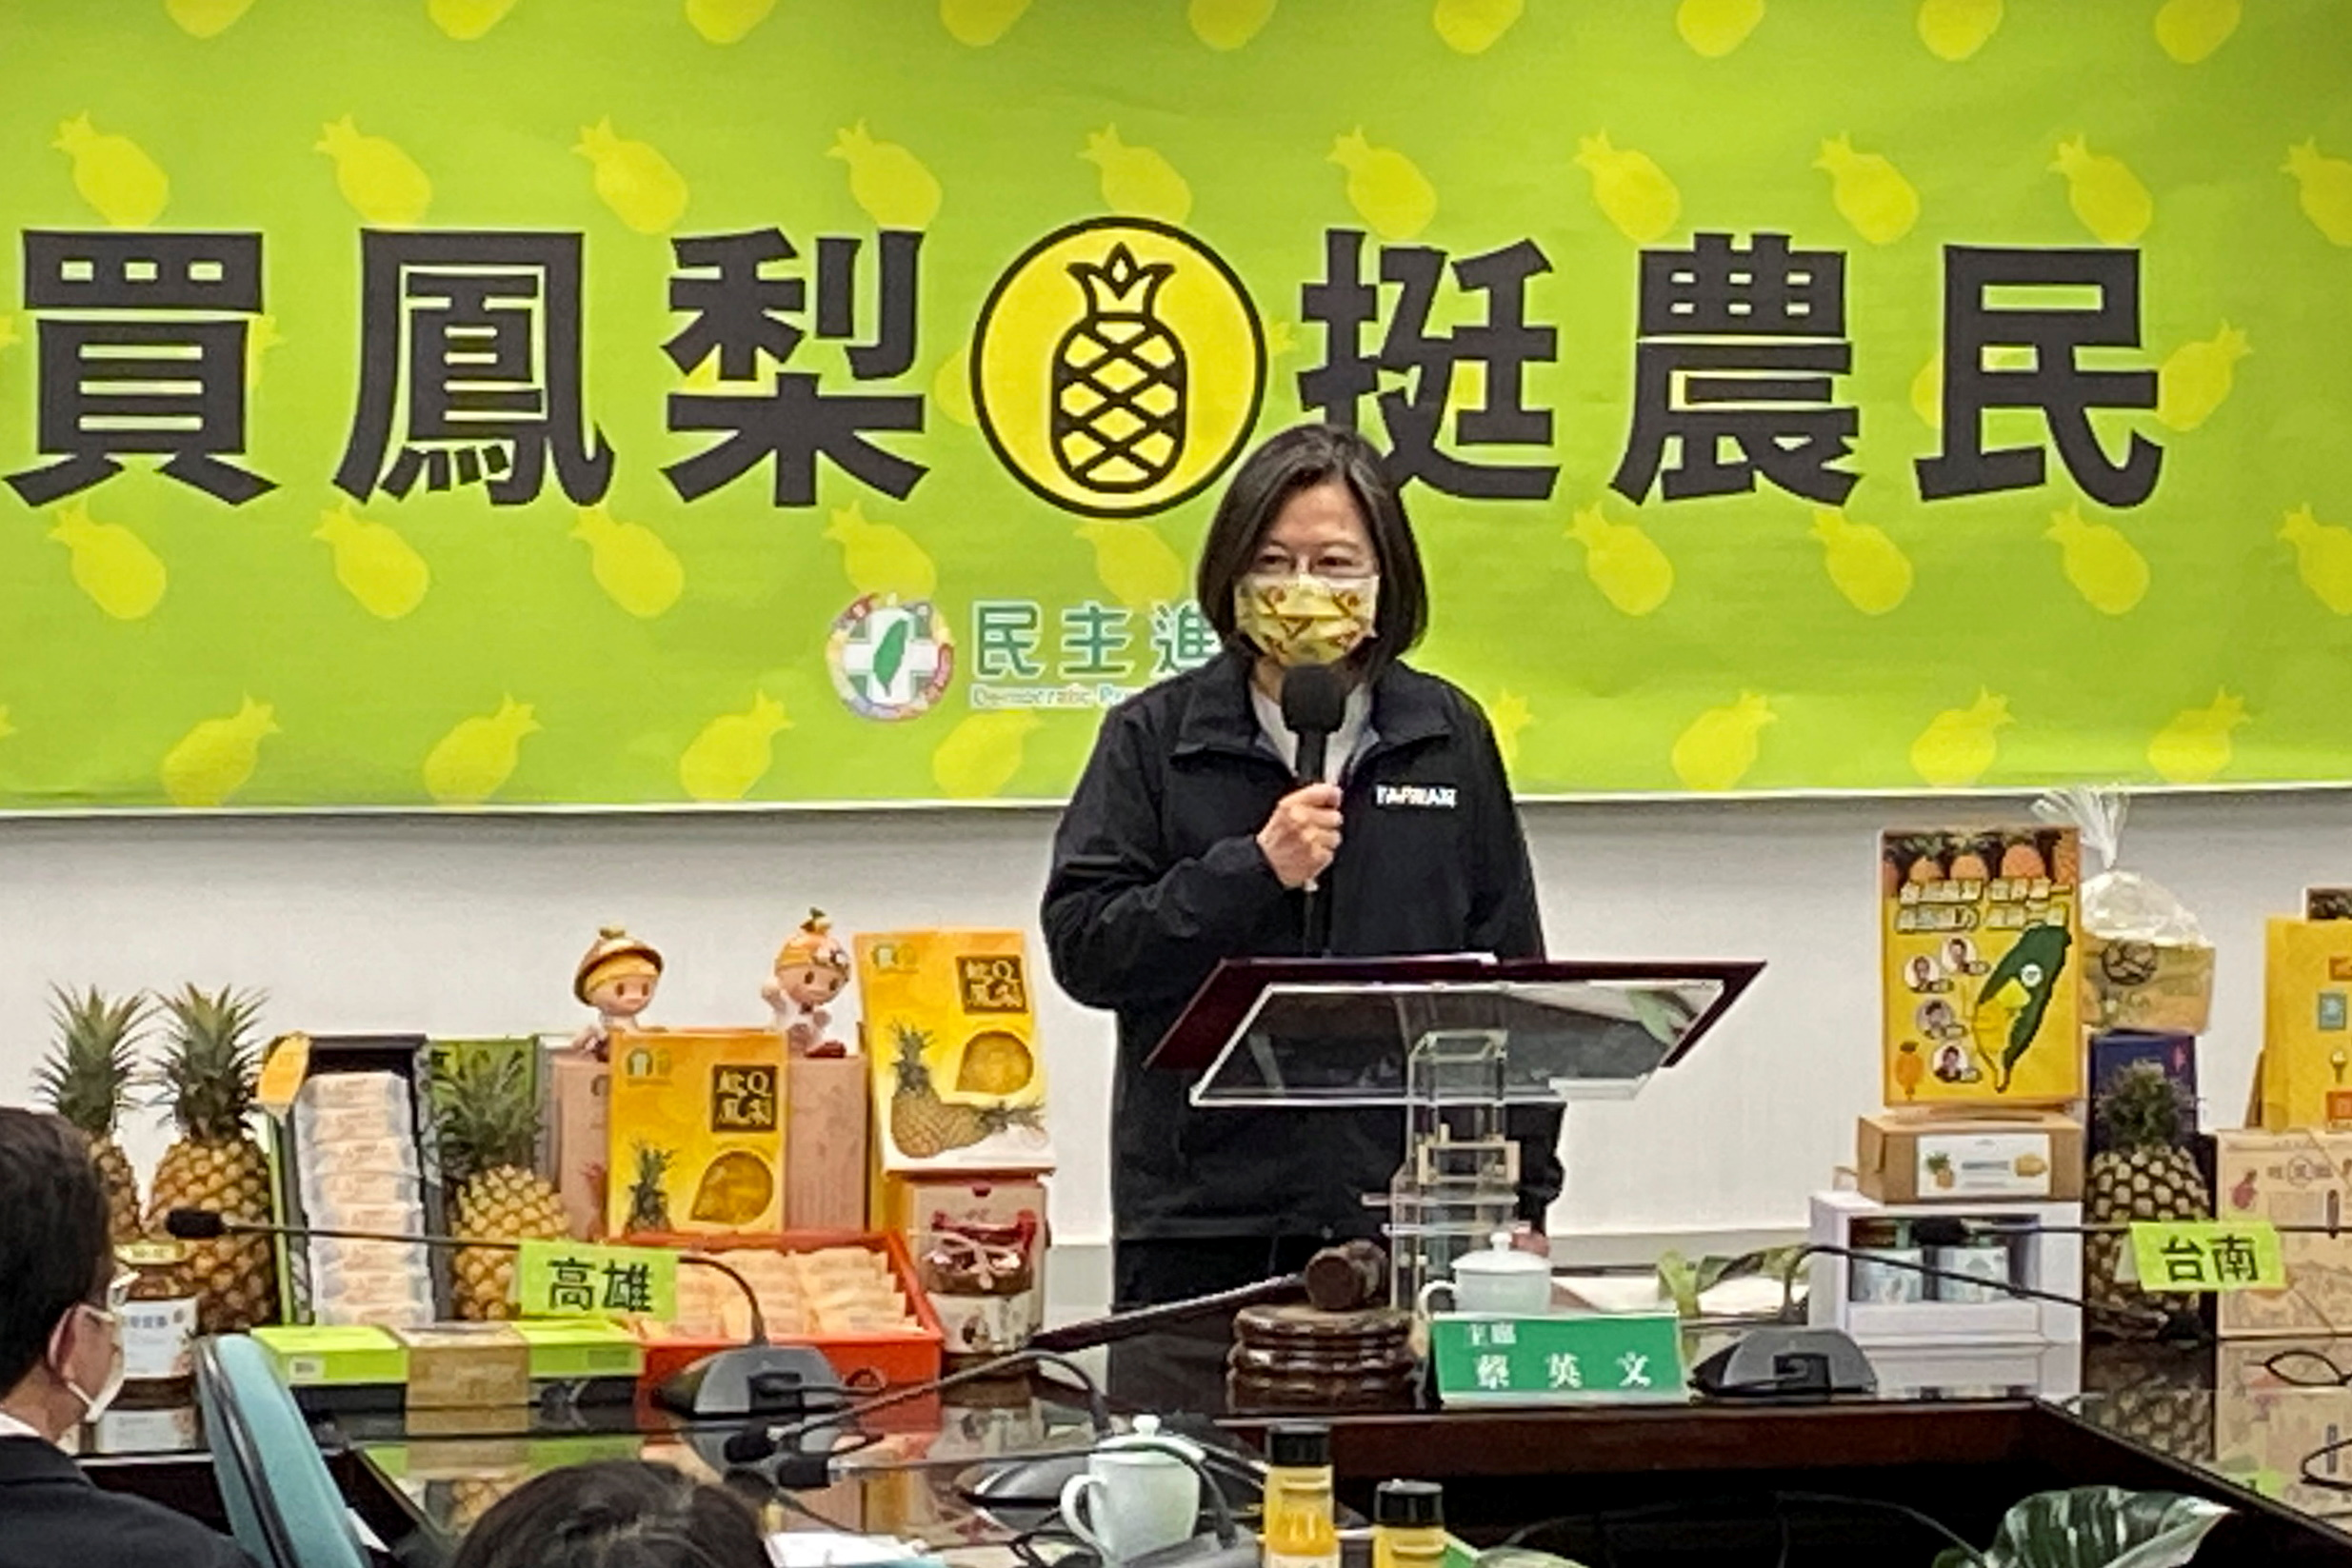 Taiwan President Tsai Ing-wen attends an event promoting Taiwanese pineapples after China announced a ban on imports of the fruit from Taiwan, in Taipei, Taiwan March 3, 2021. REUTERS/Ben Blanchard